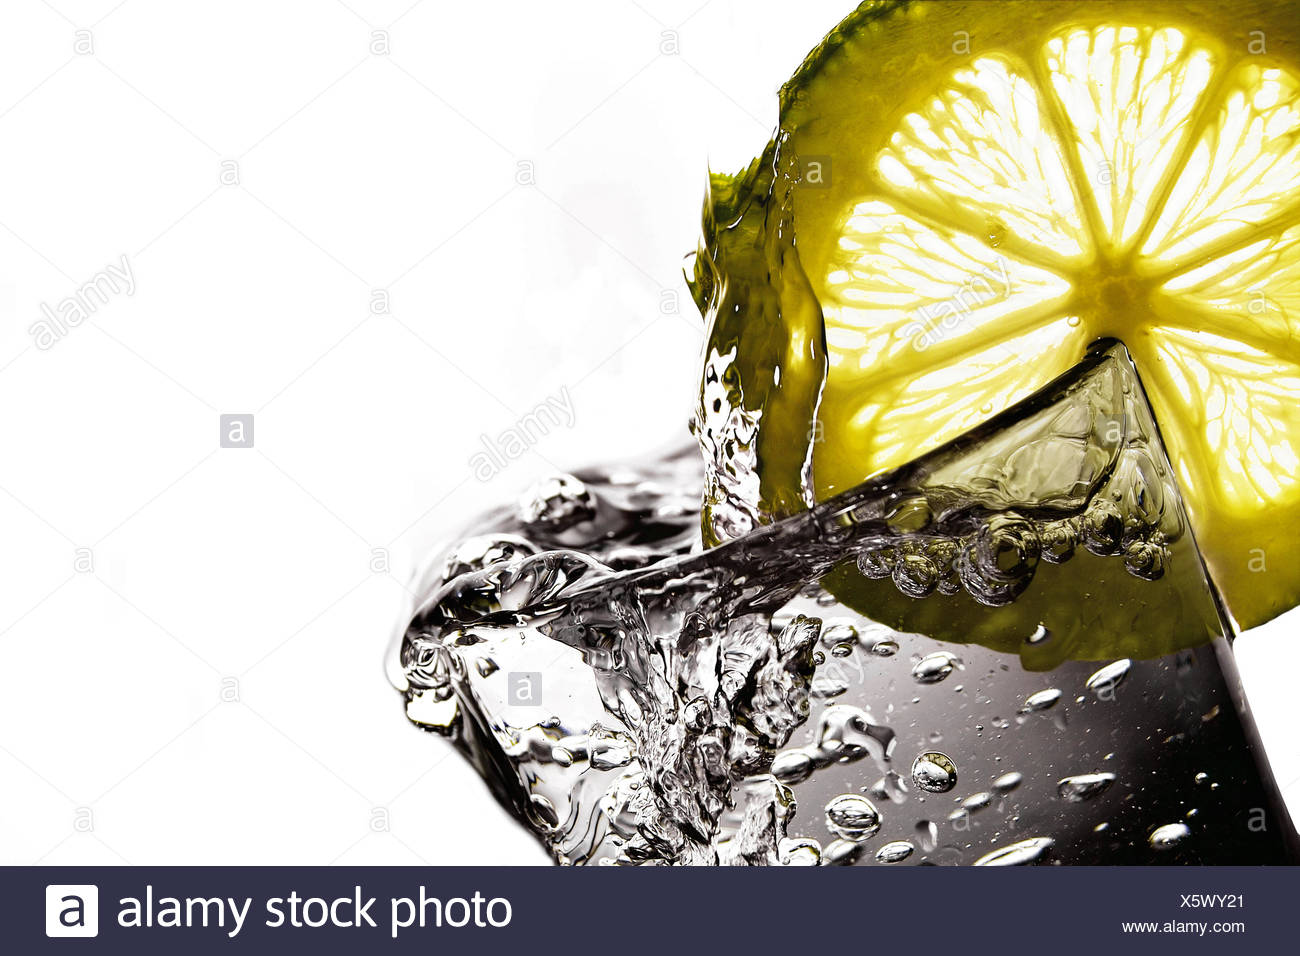 Thirst quencher - Stock Image